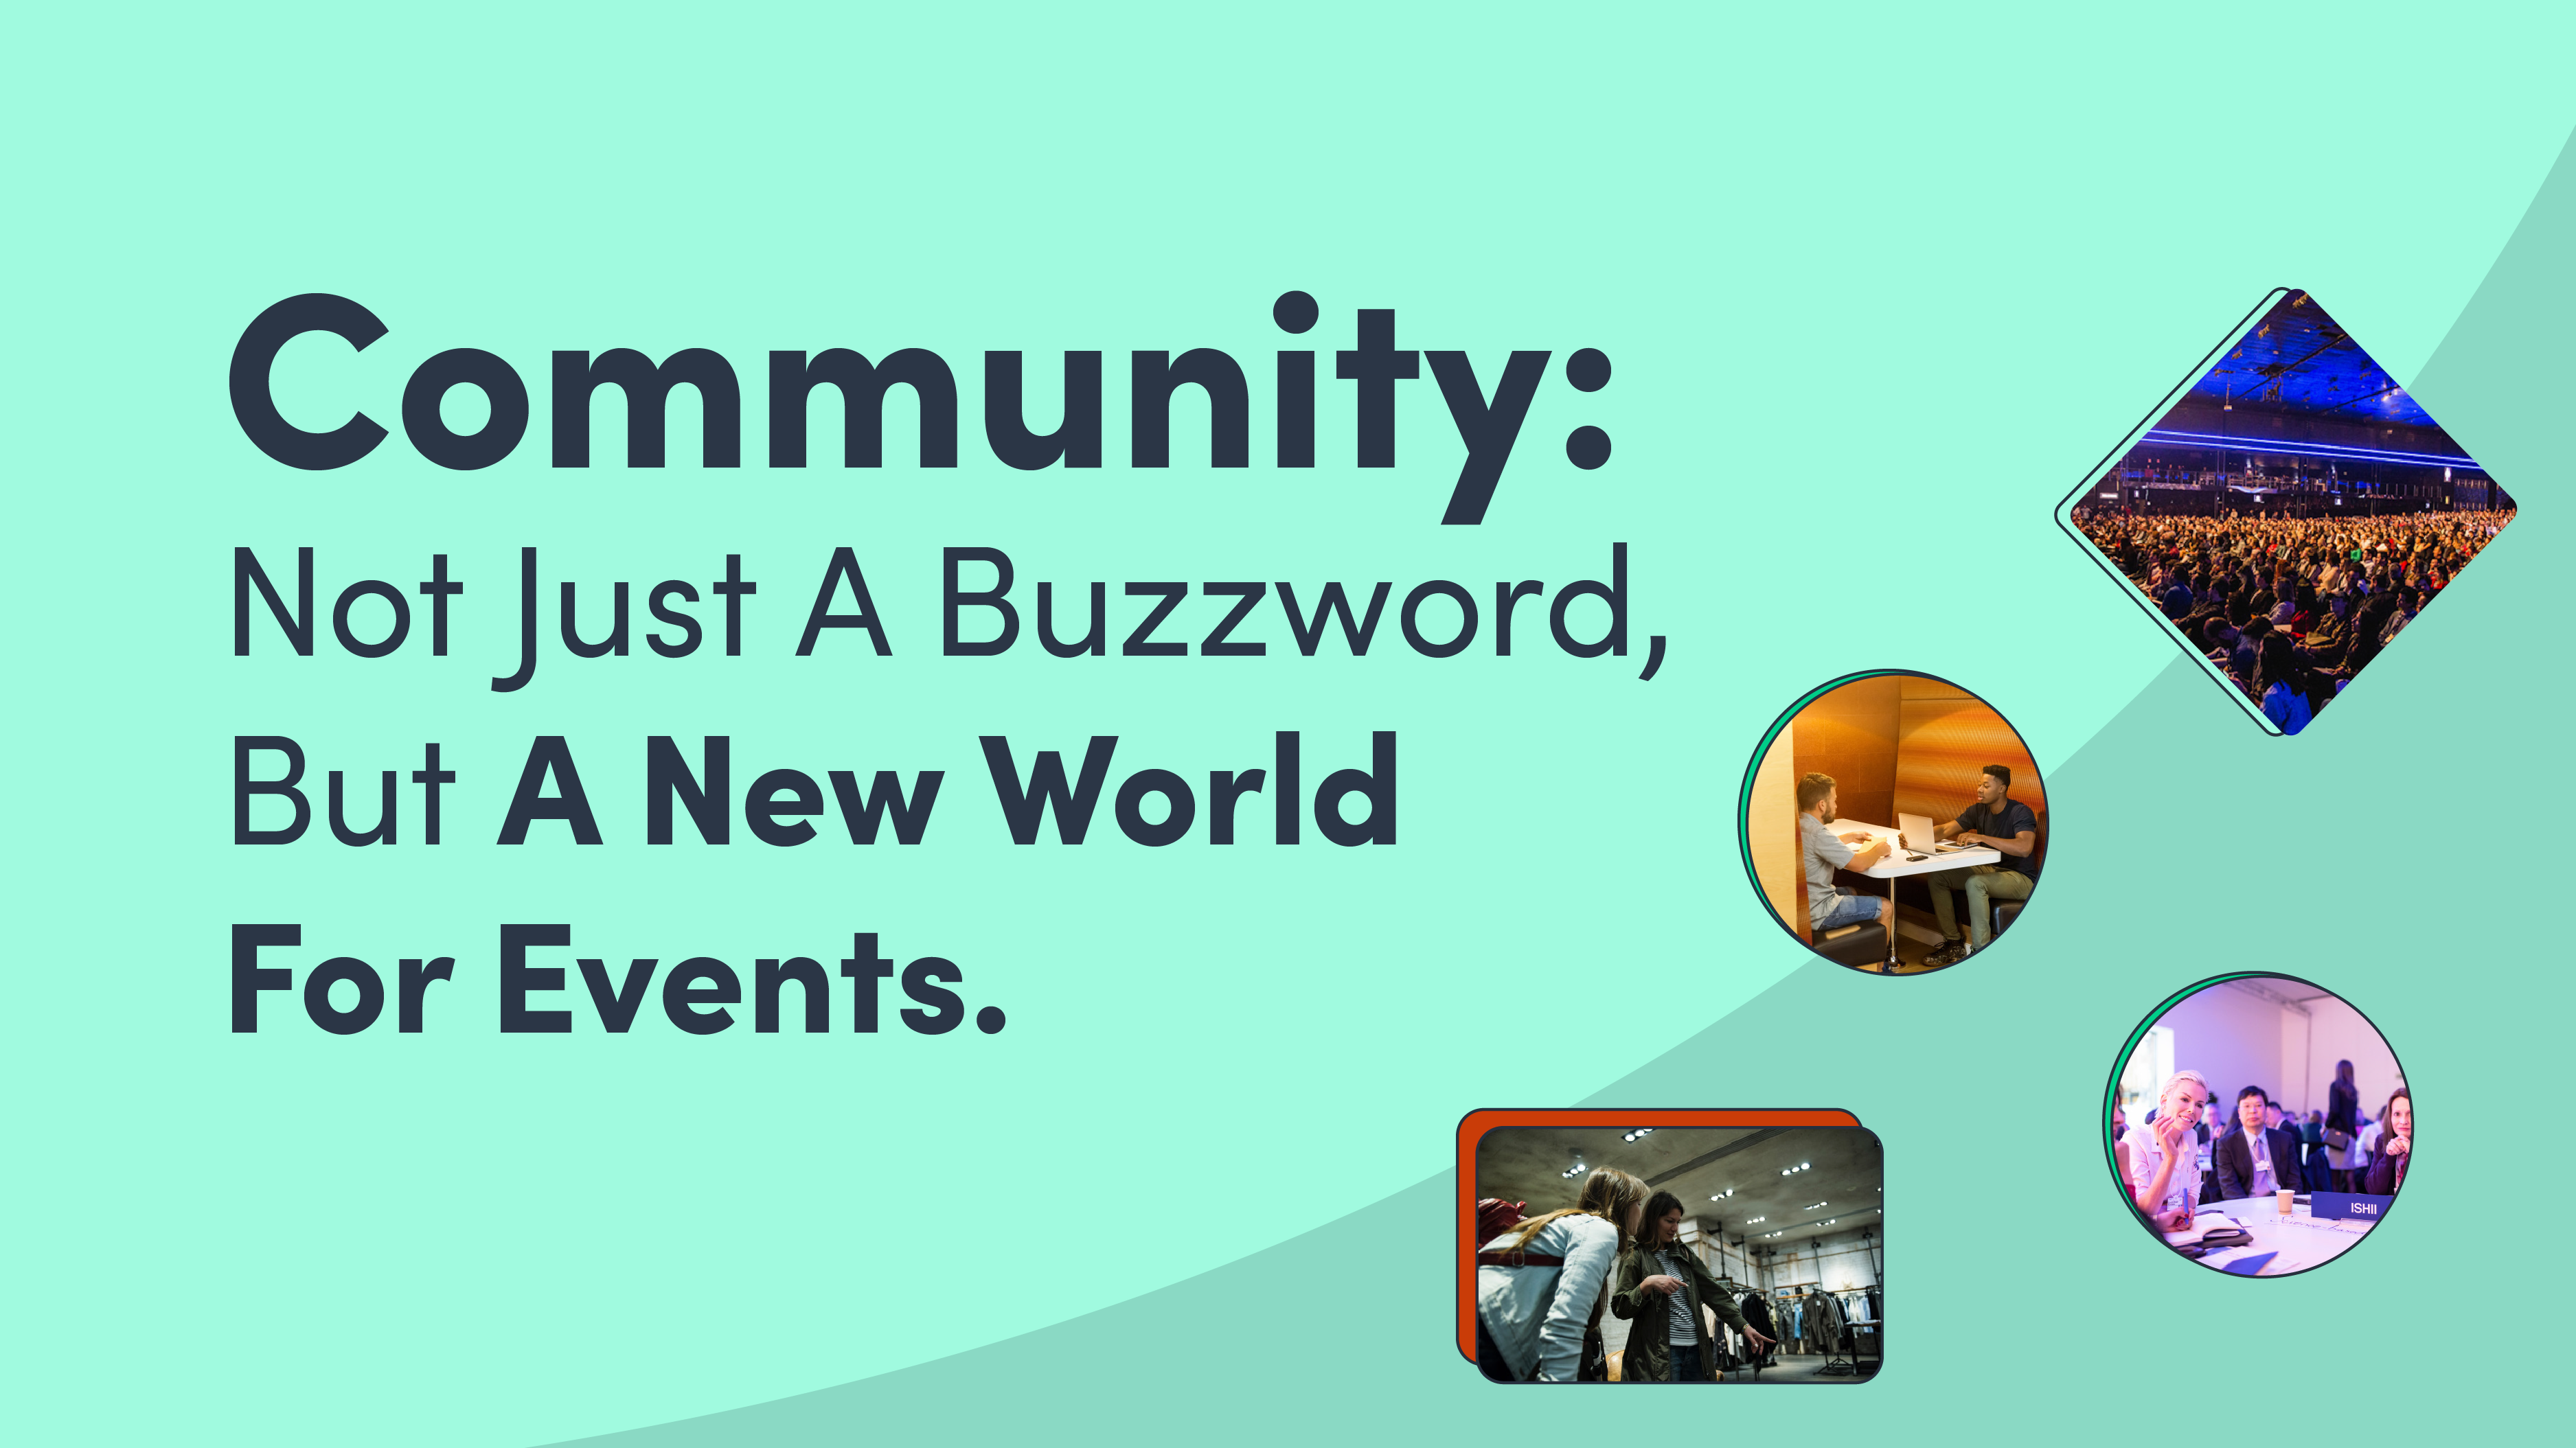 Community: Not Just A Buzzword, But A New World For Events.